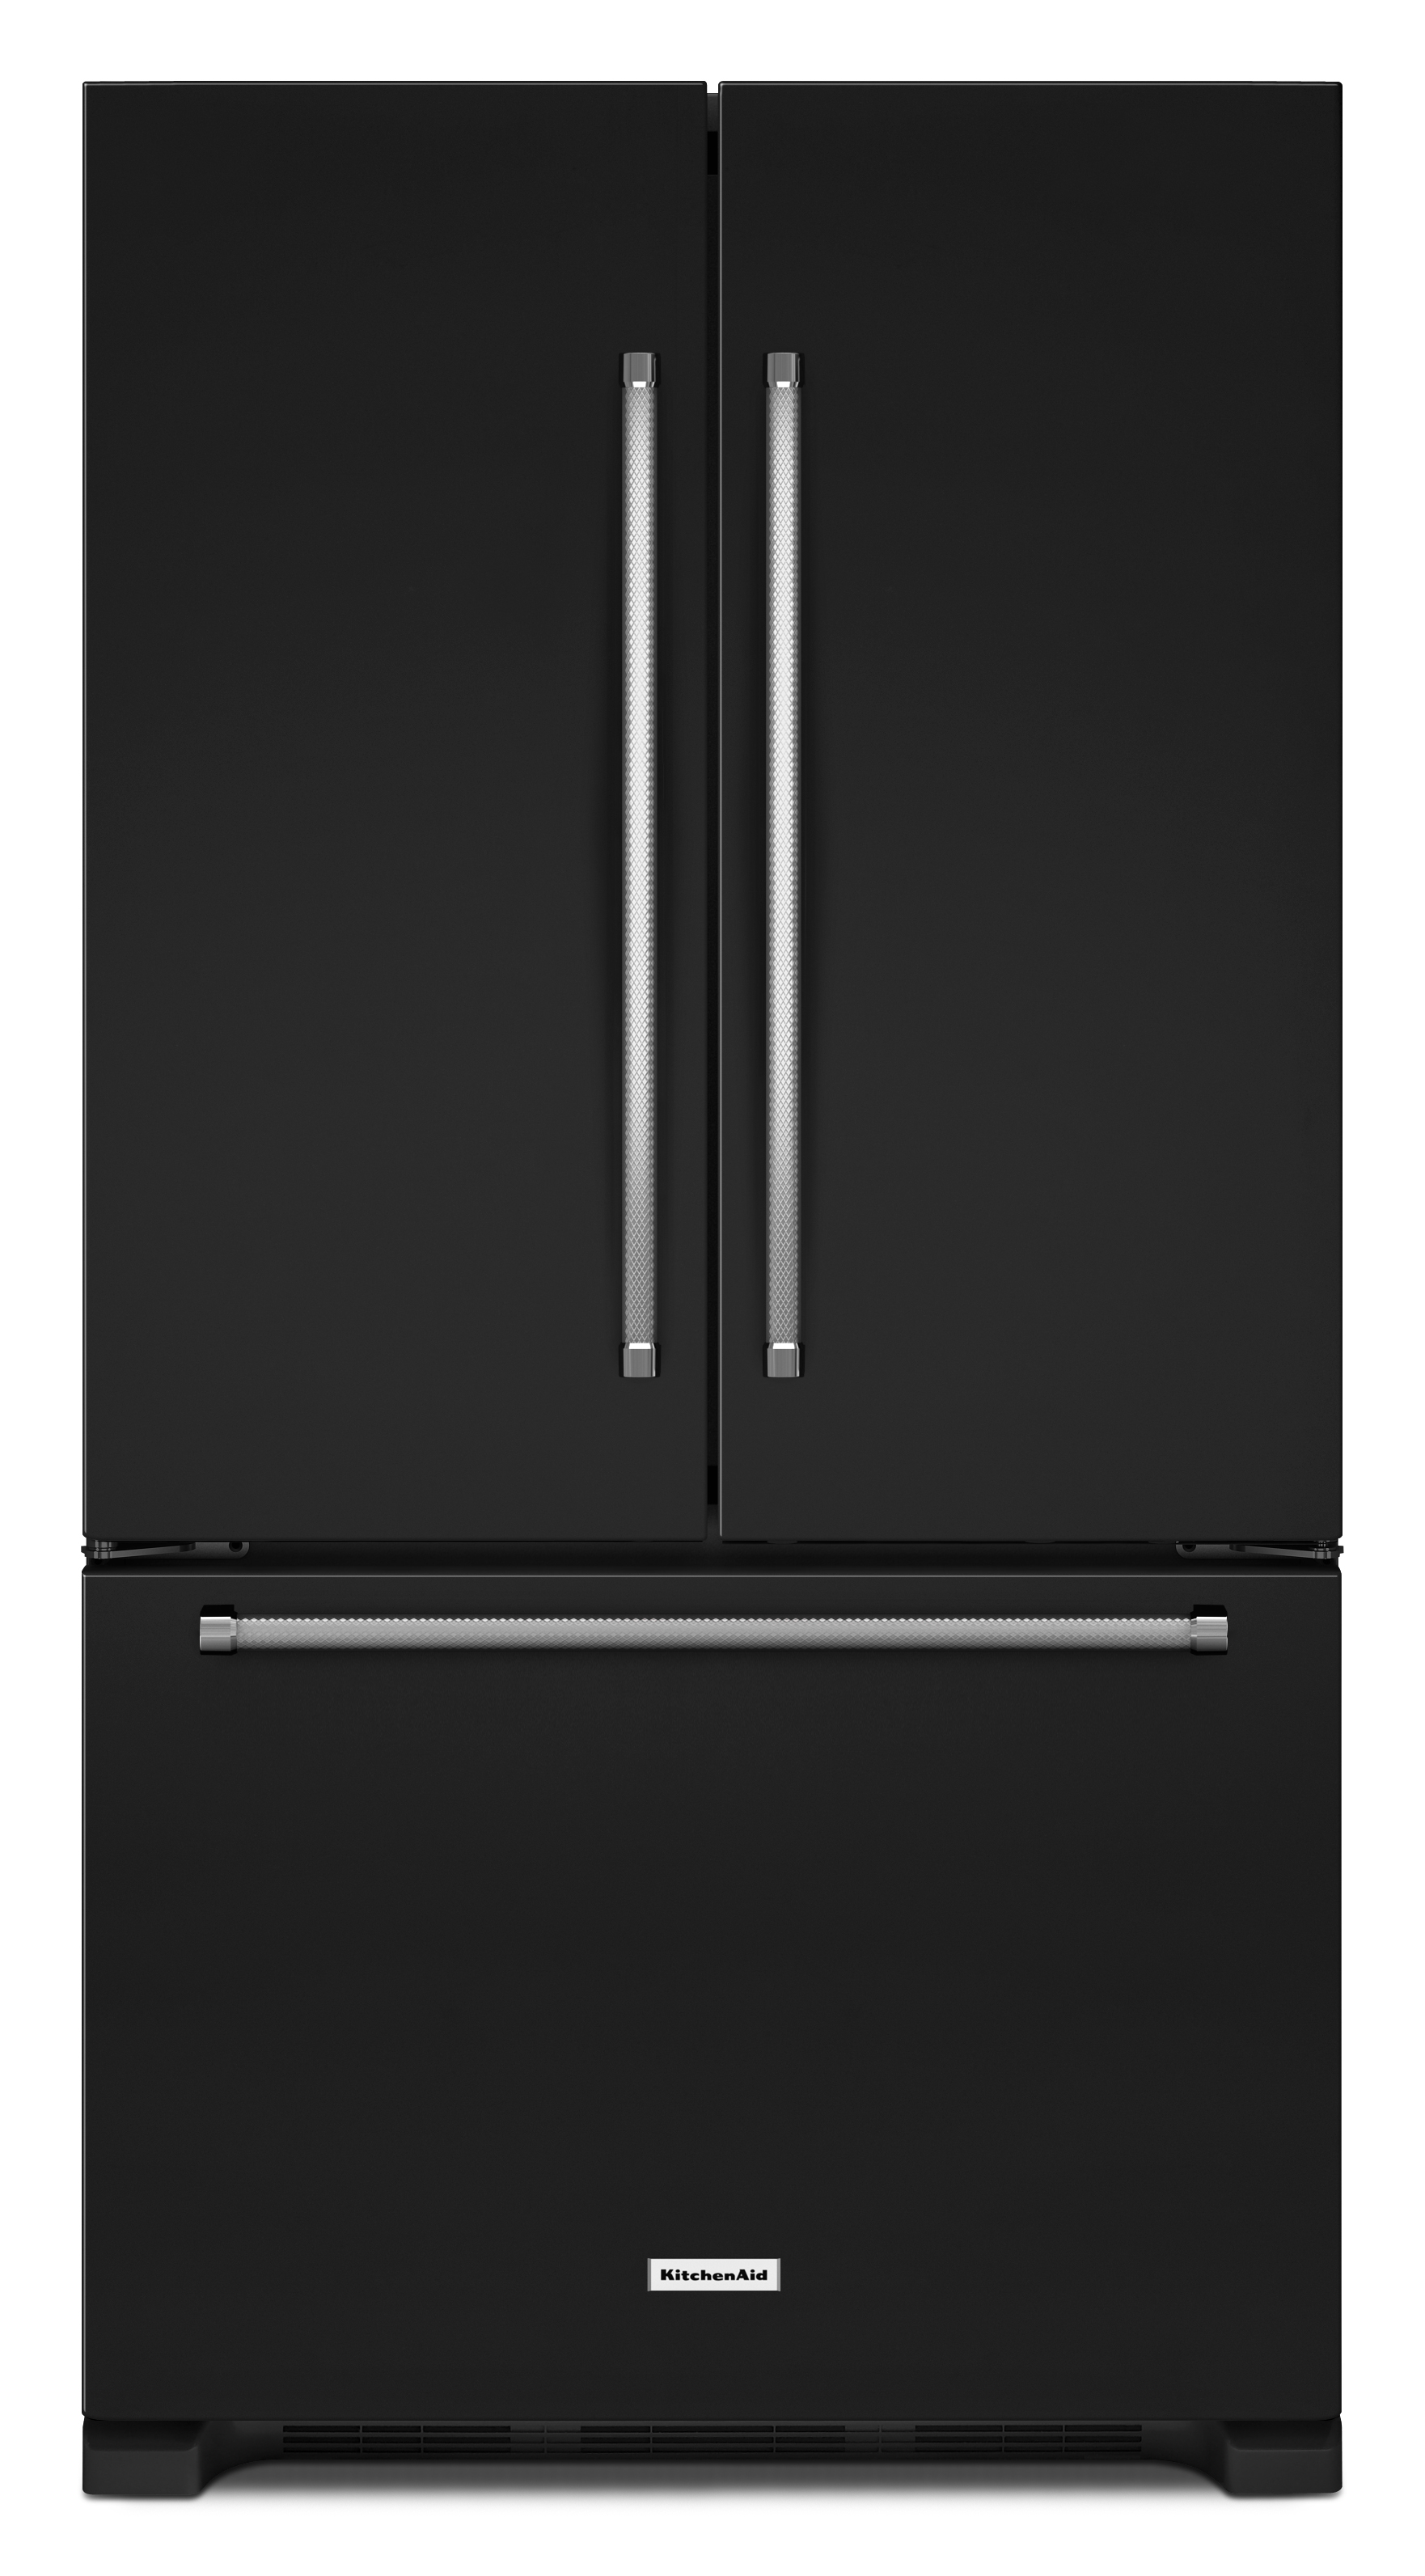 KitchenAid KRFF305EBL 25 cu. ft. French Door Refrigerator - Black